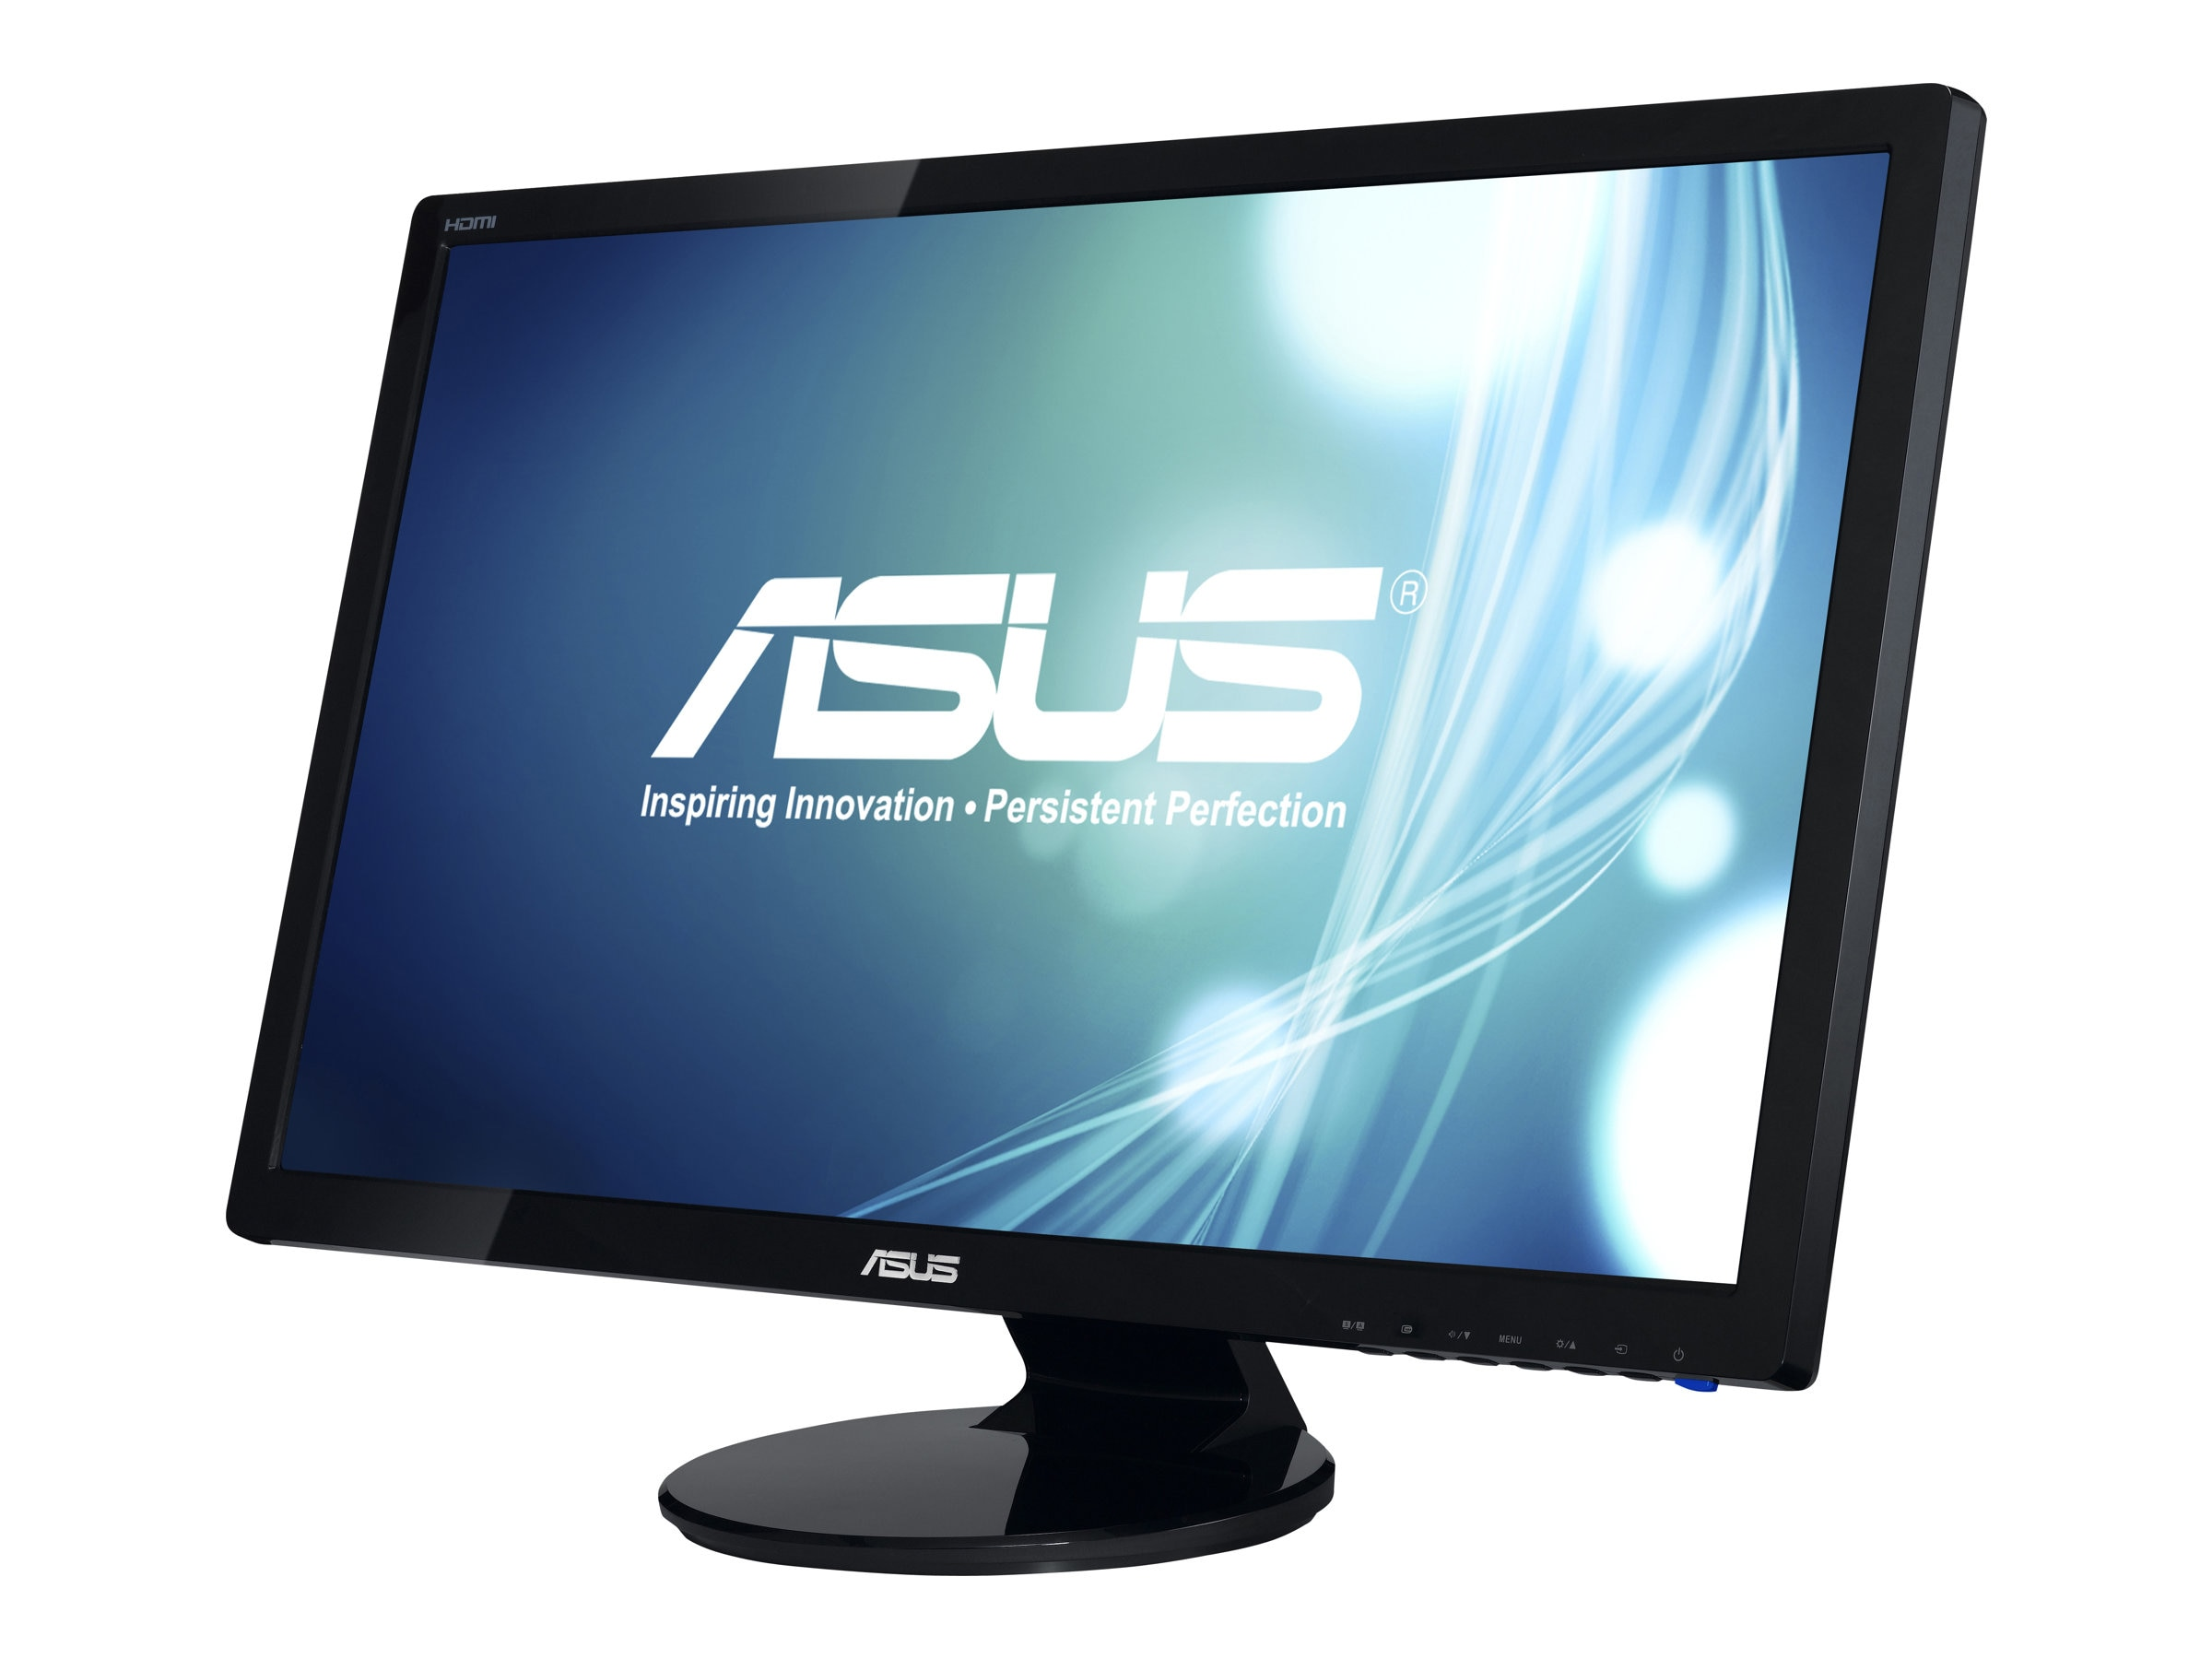 Asus 27 VE278H Full HD LED-LCD Monitor, Black, VE278H